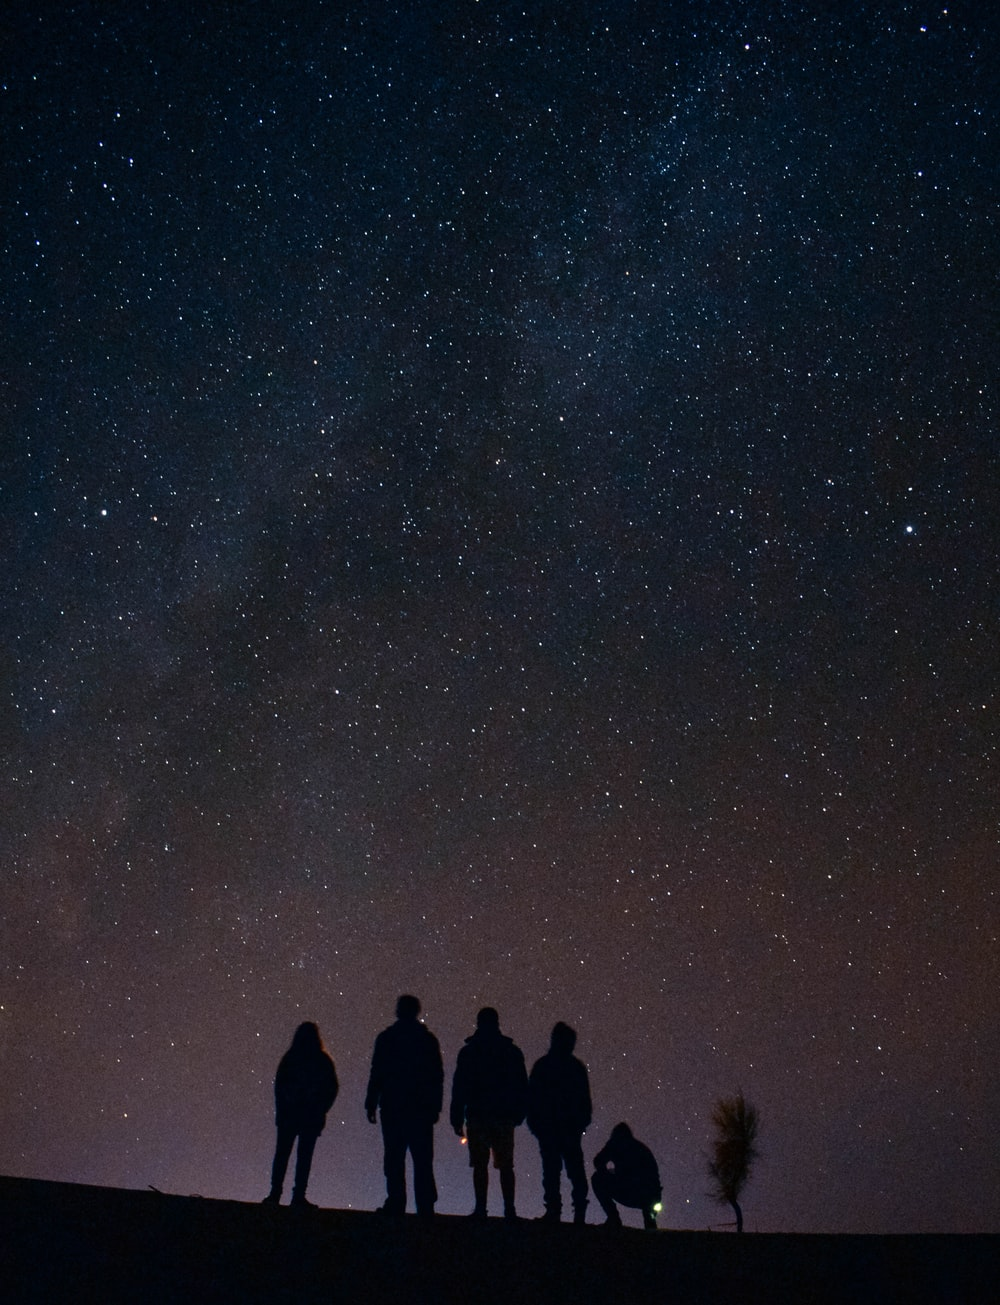 silhouette of five persons staring at the stars at night